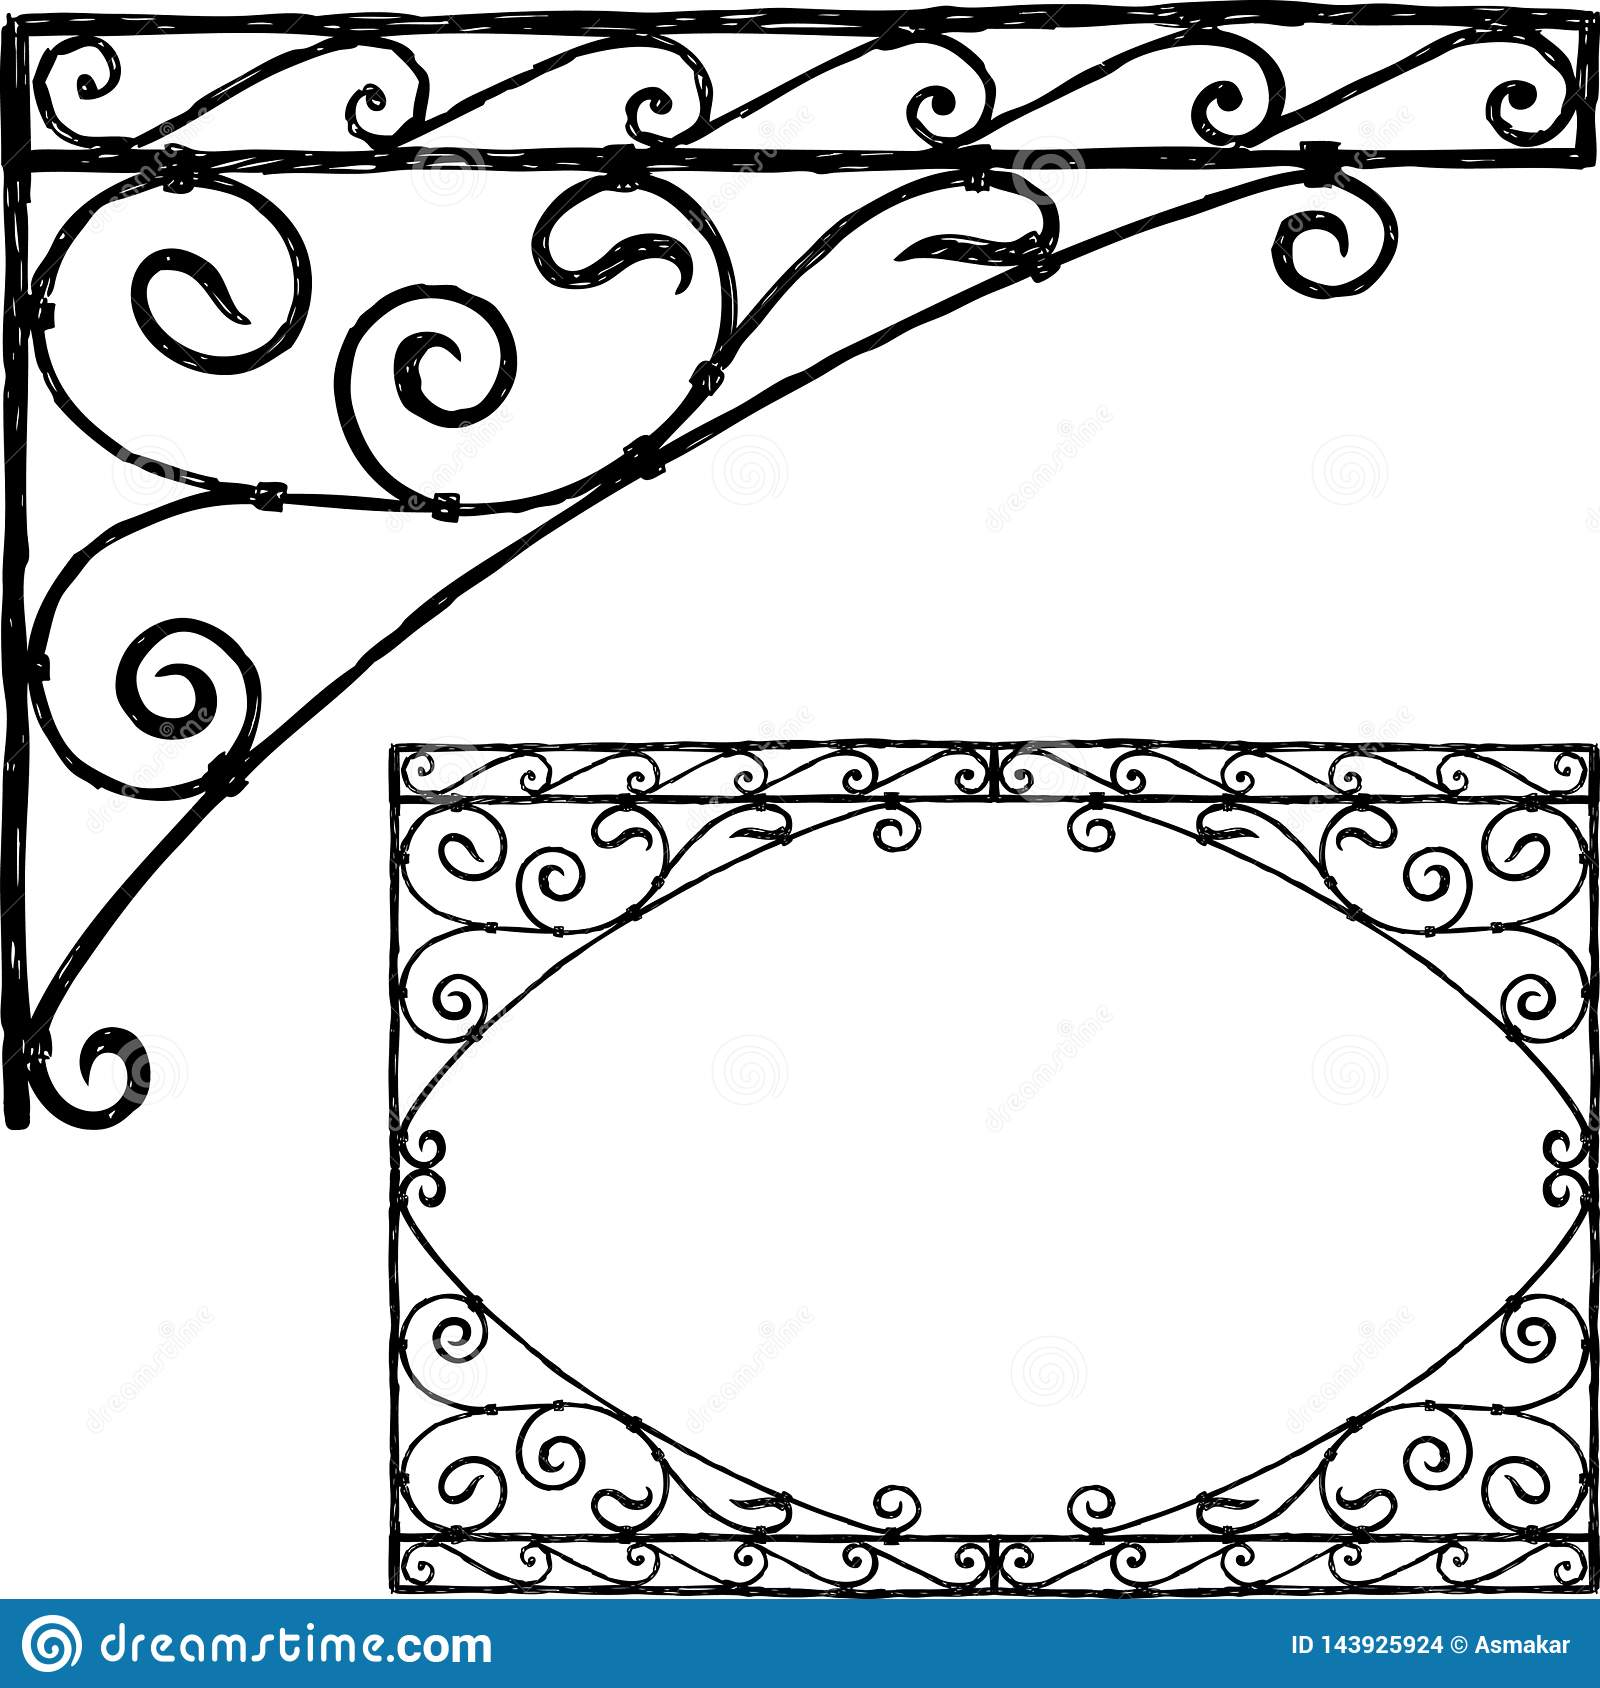 Hand drawing of a vintage architectural element